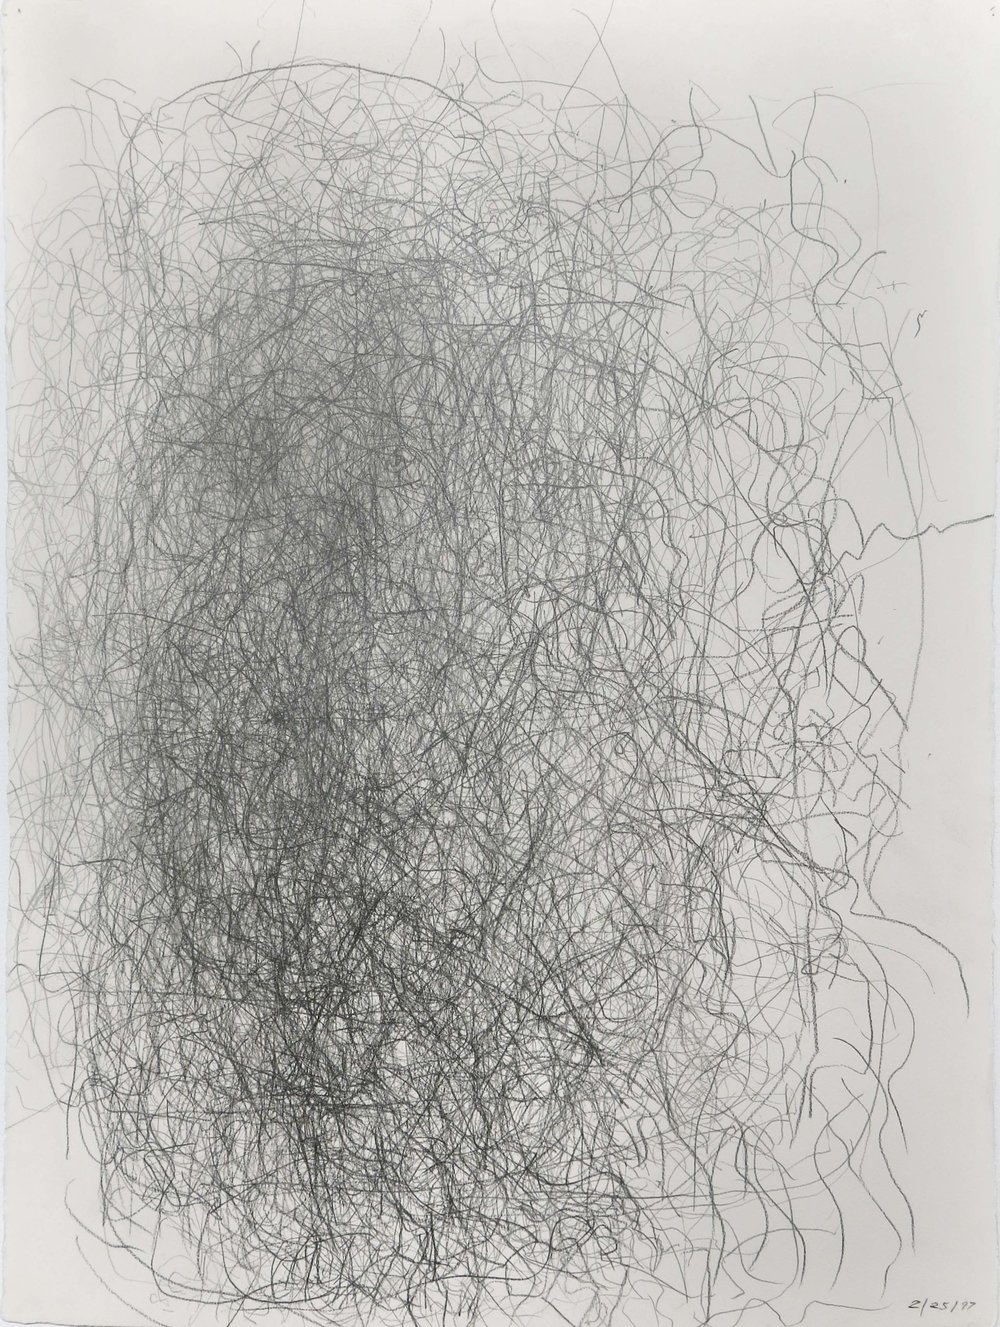 Edward Finnegan,  February 25, 1997 (Portraits series) , 1997, Graphite on paper, 30h x 22.5w in.